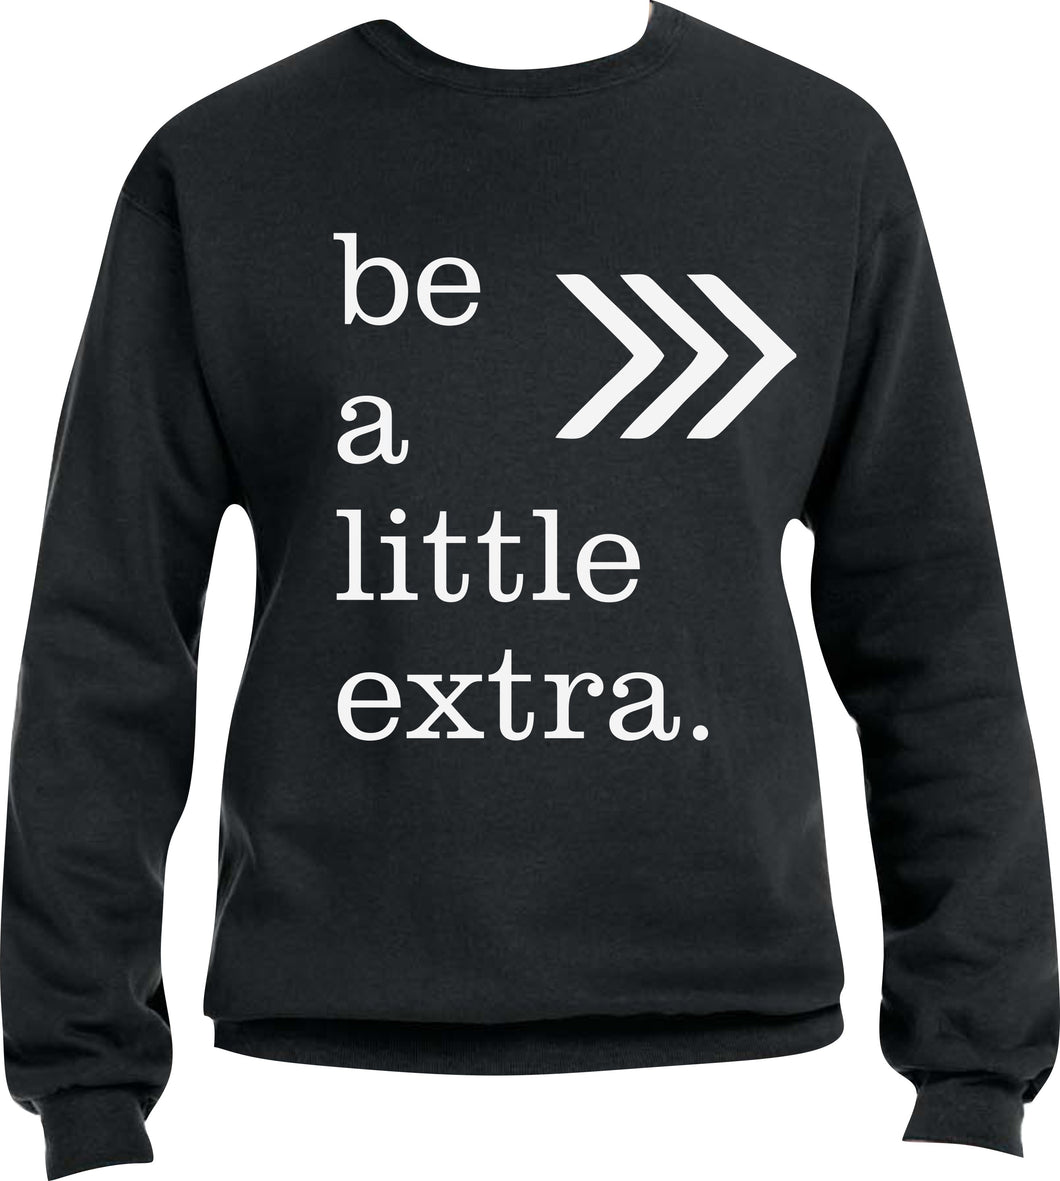 Crewneck Sweatshirt: Be a Little Extra & Support Down Syndrome